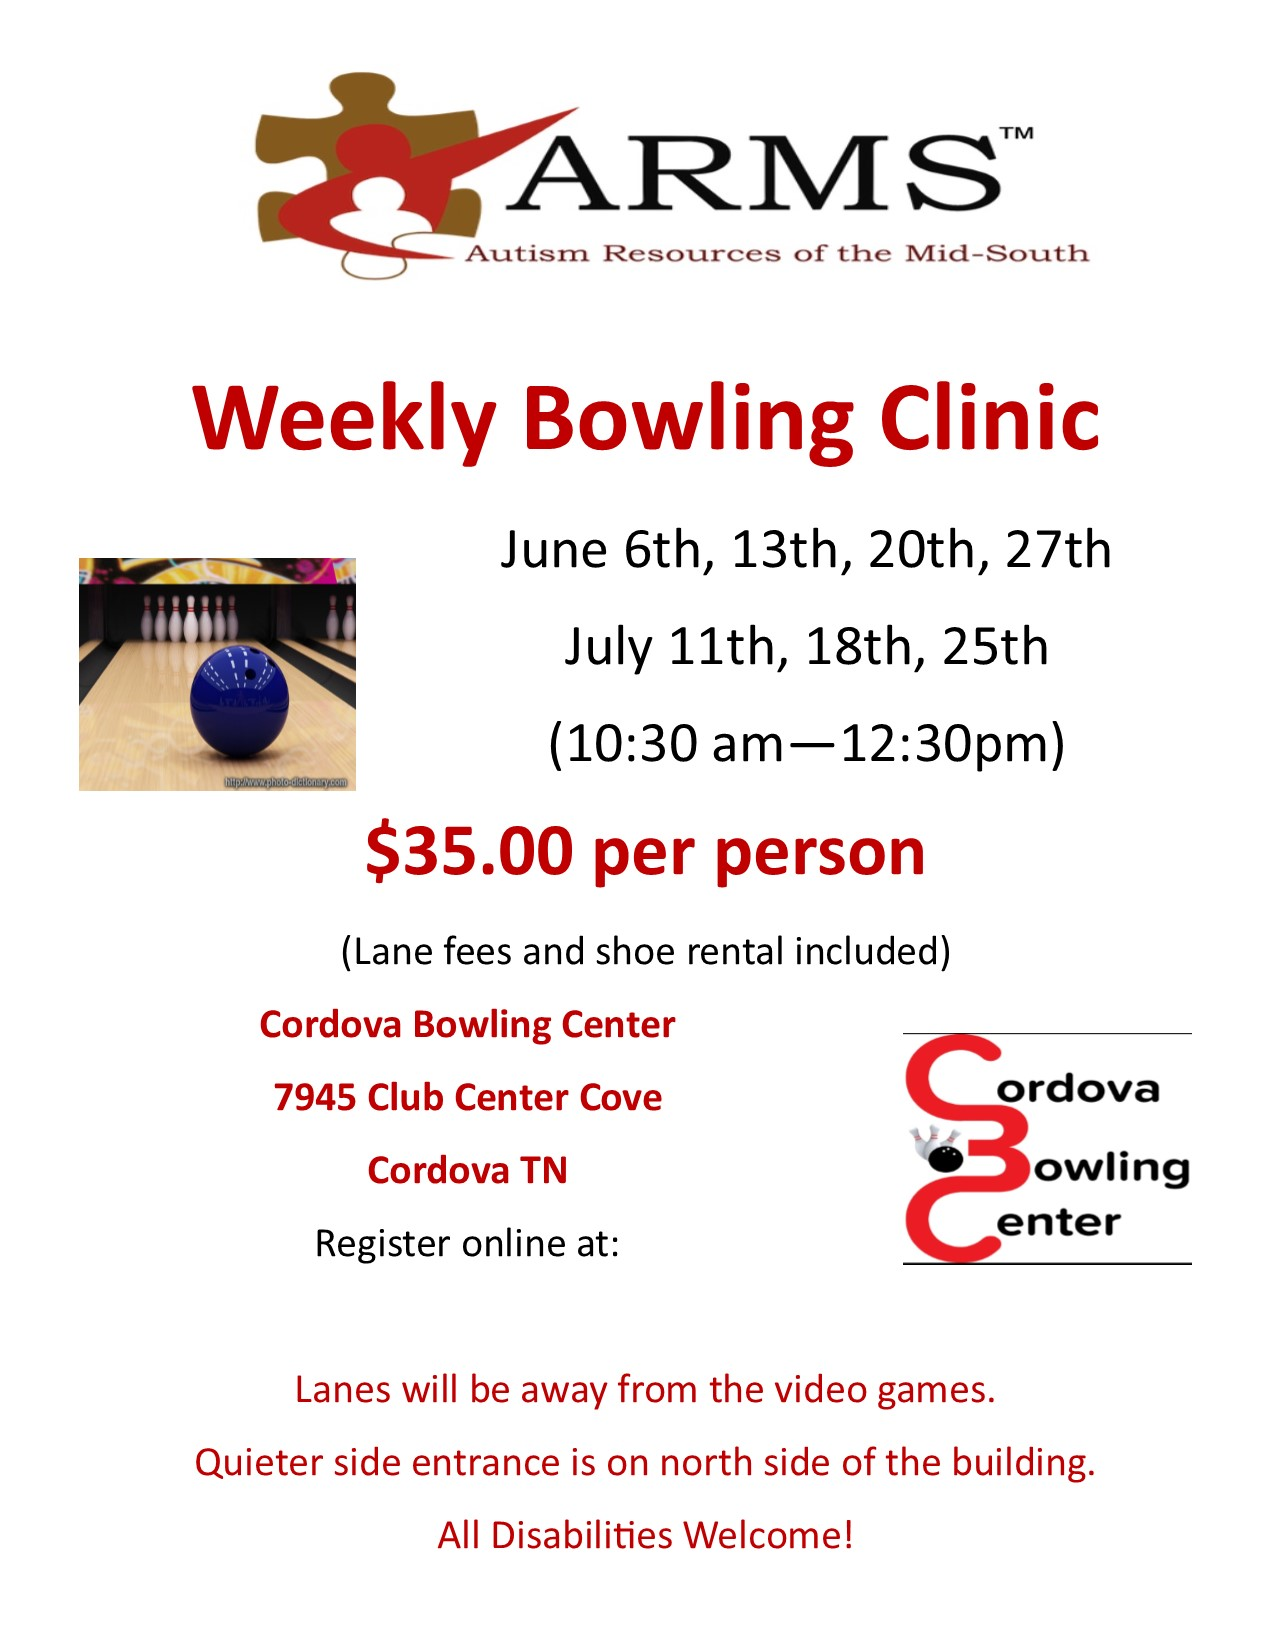 ARMS Bowling Clinic